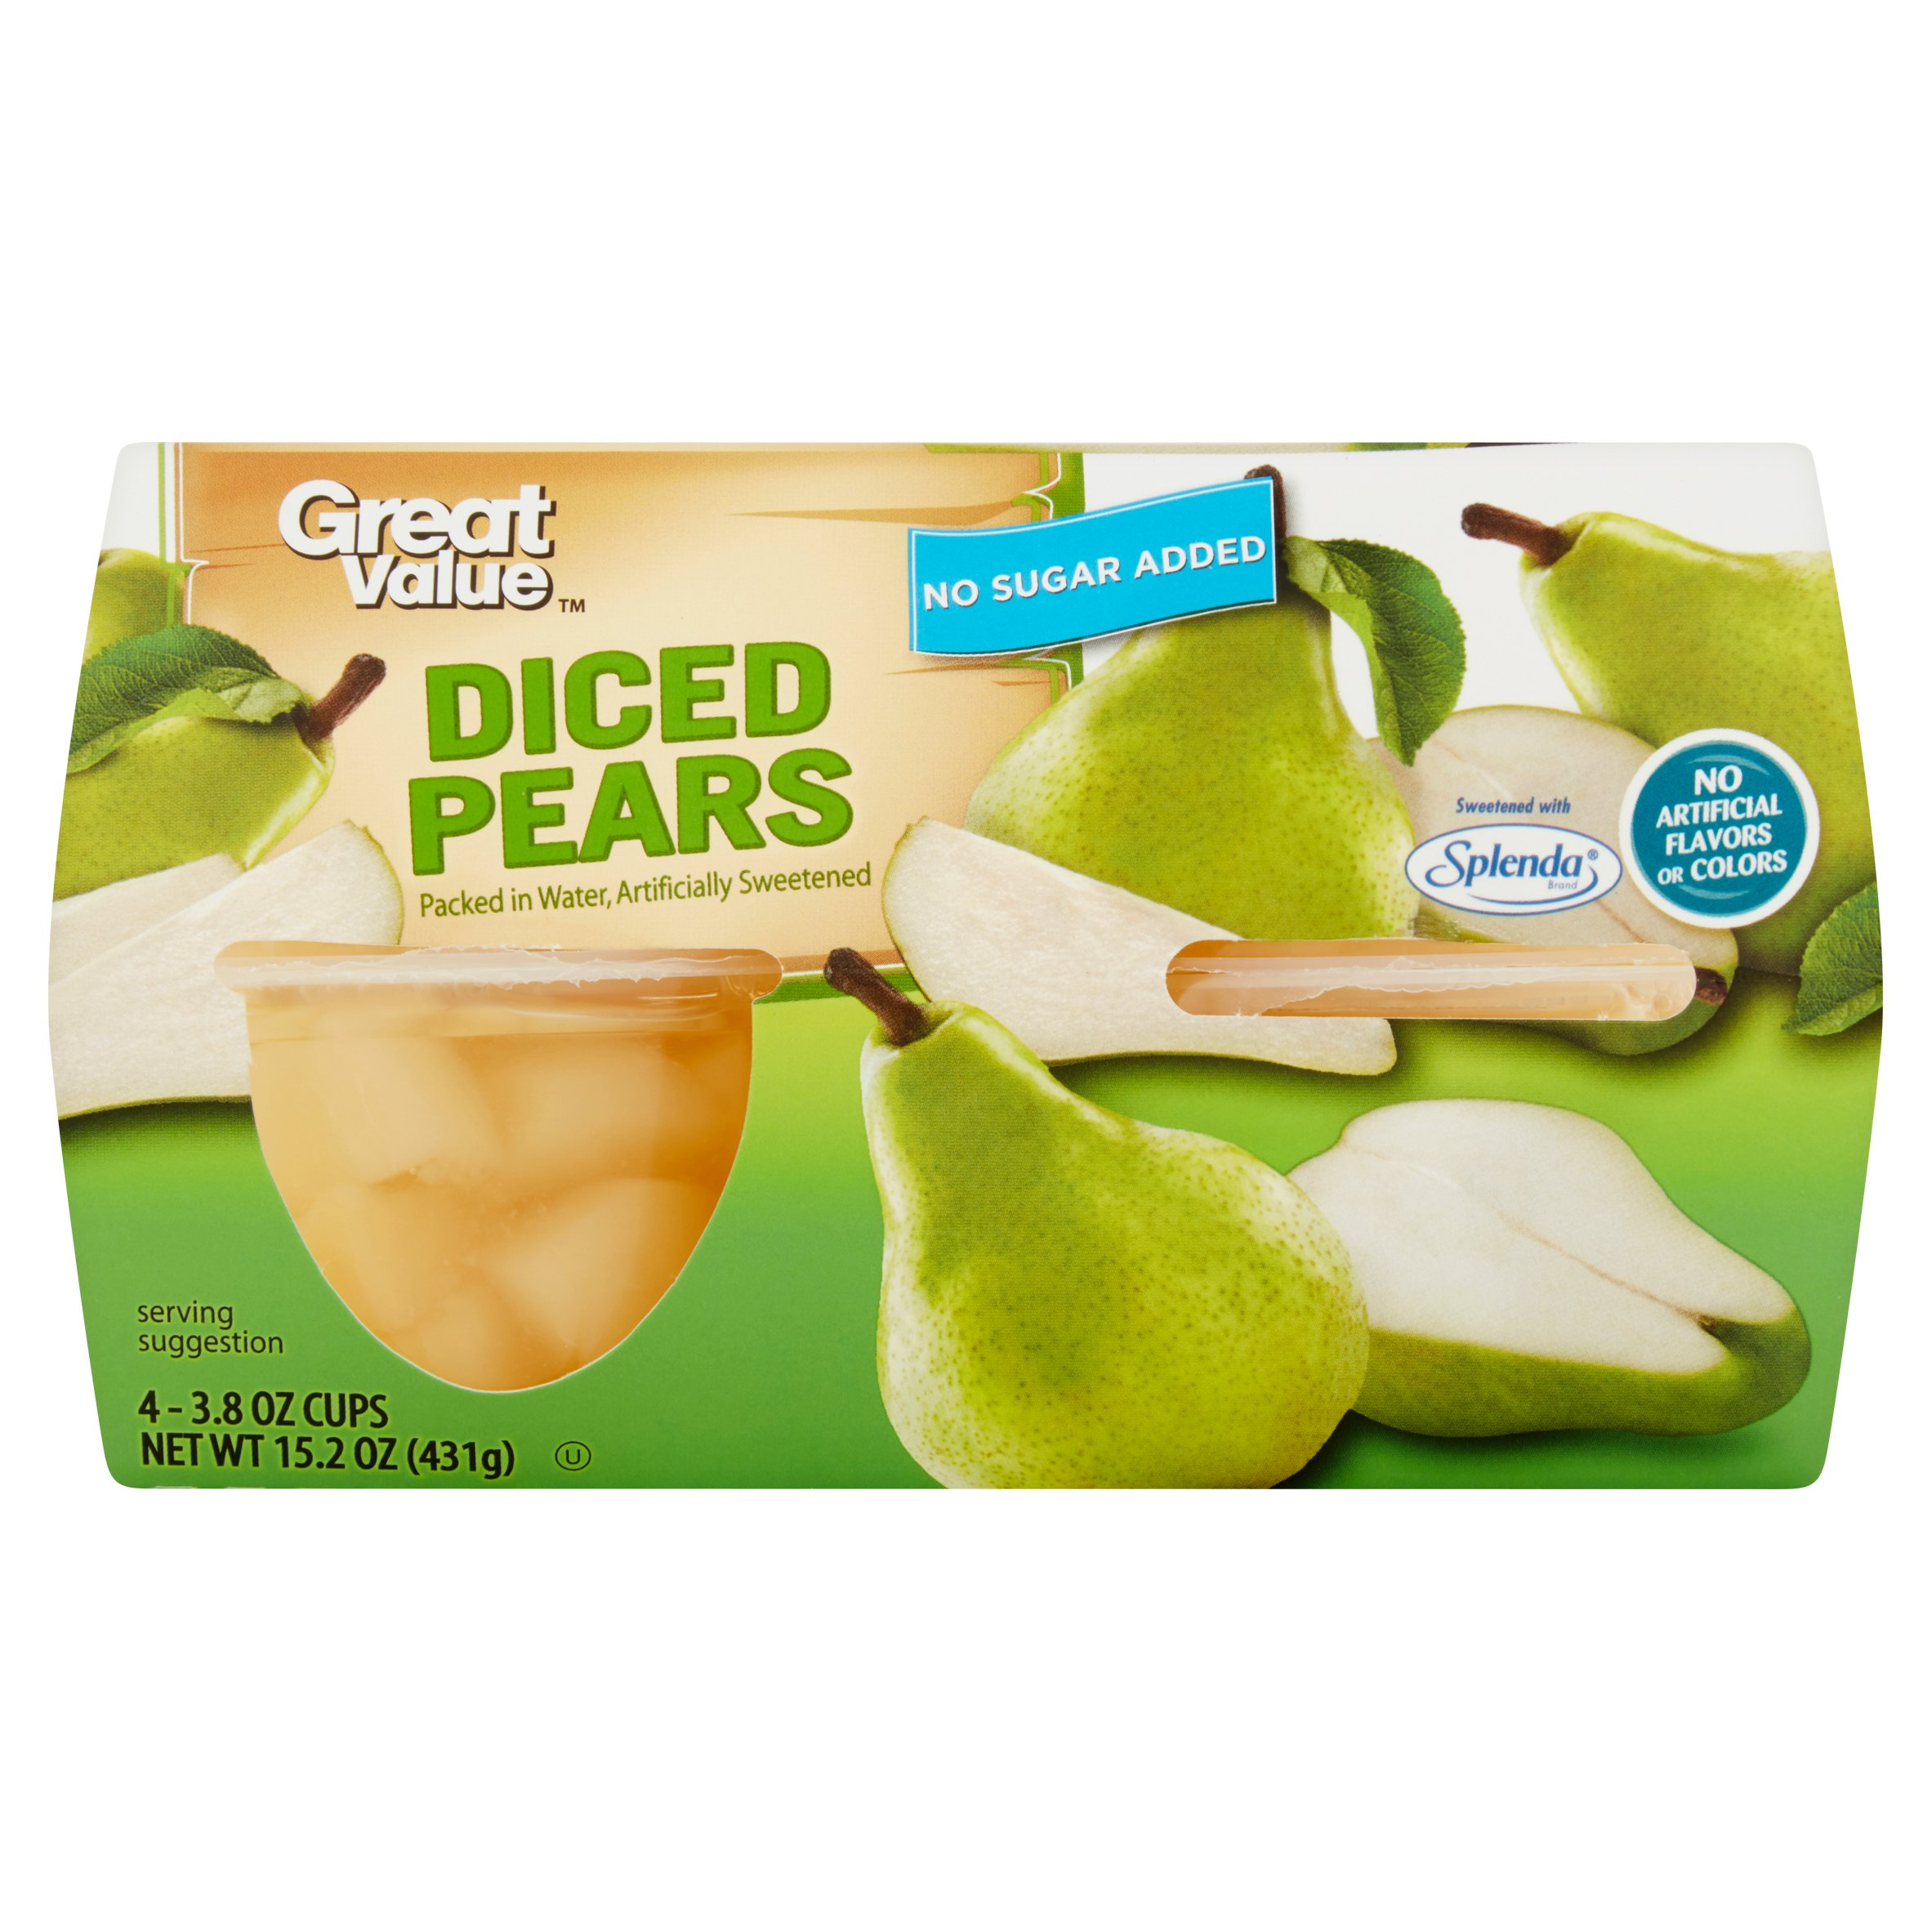 Great Value Diced Pears, 3.8 oz, 4 count by Wal-Mart Stores, Inc.